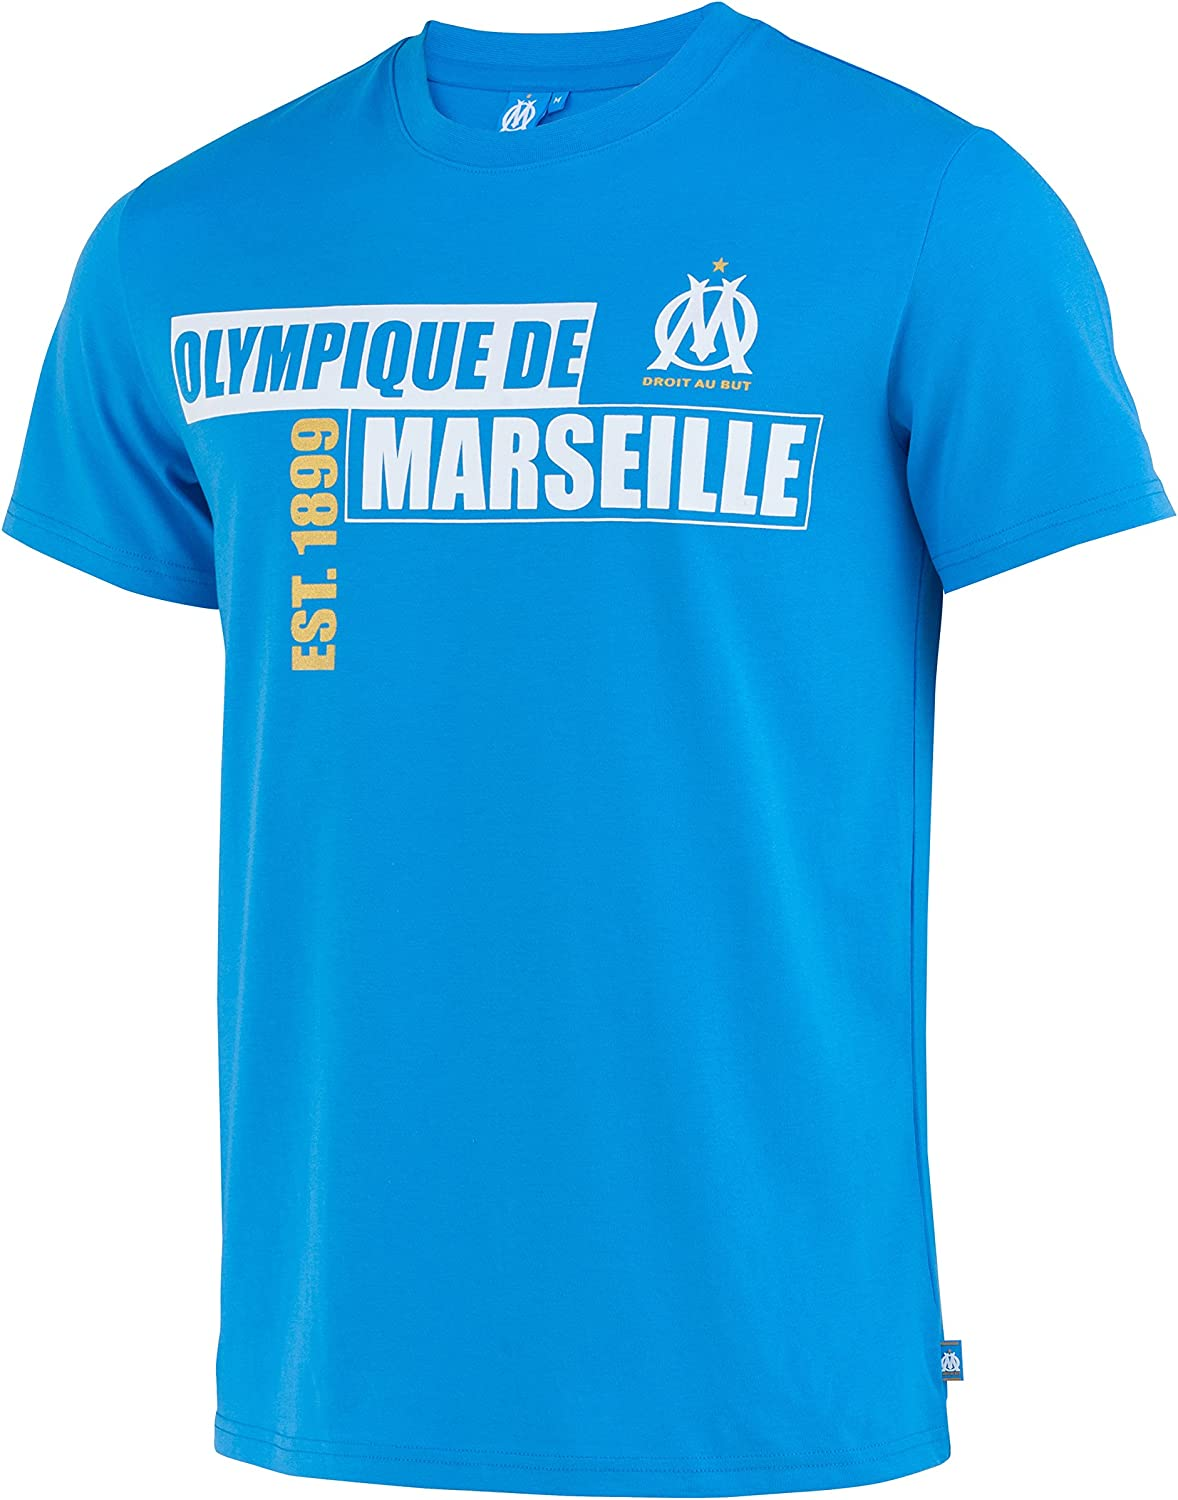 Olympique de Marseille T-Shirt Herrengr/ö/ße offizielle Kollektion